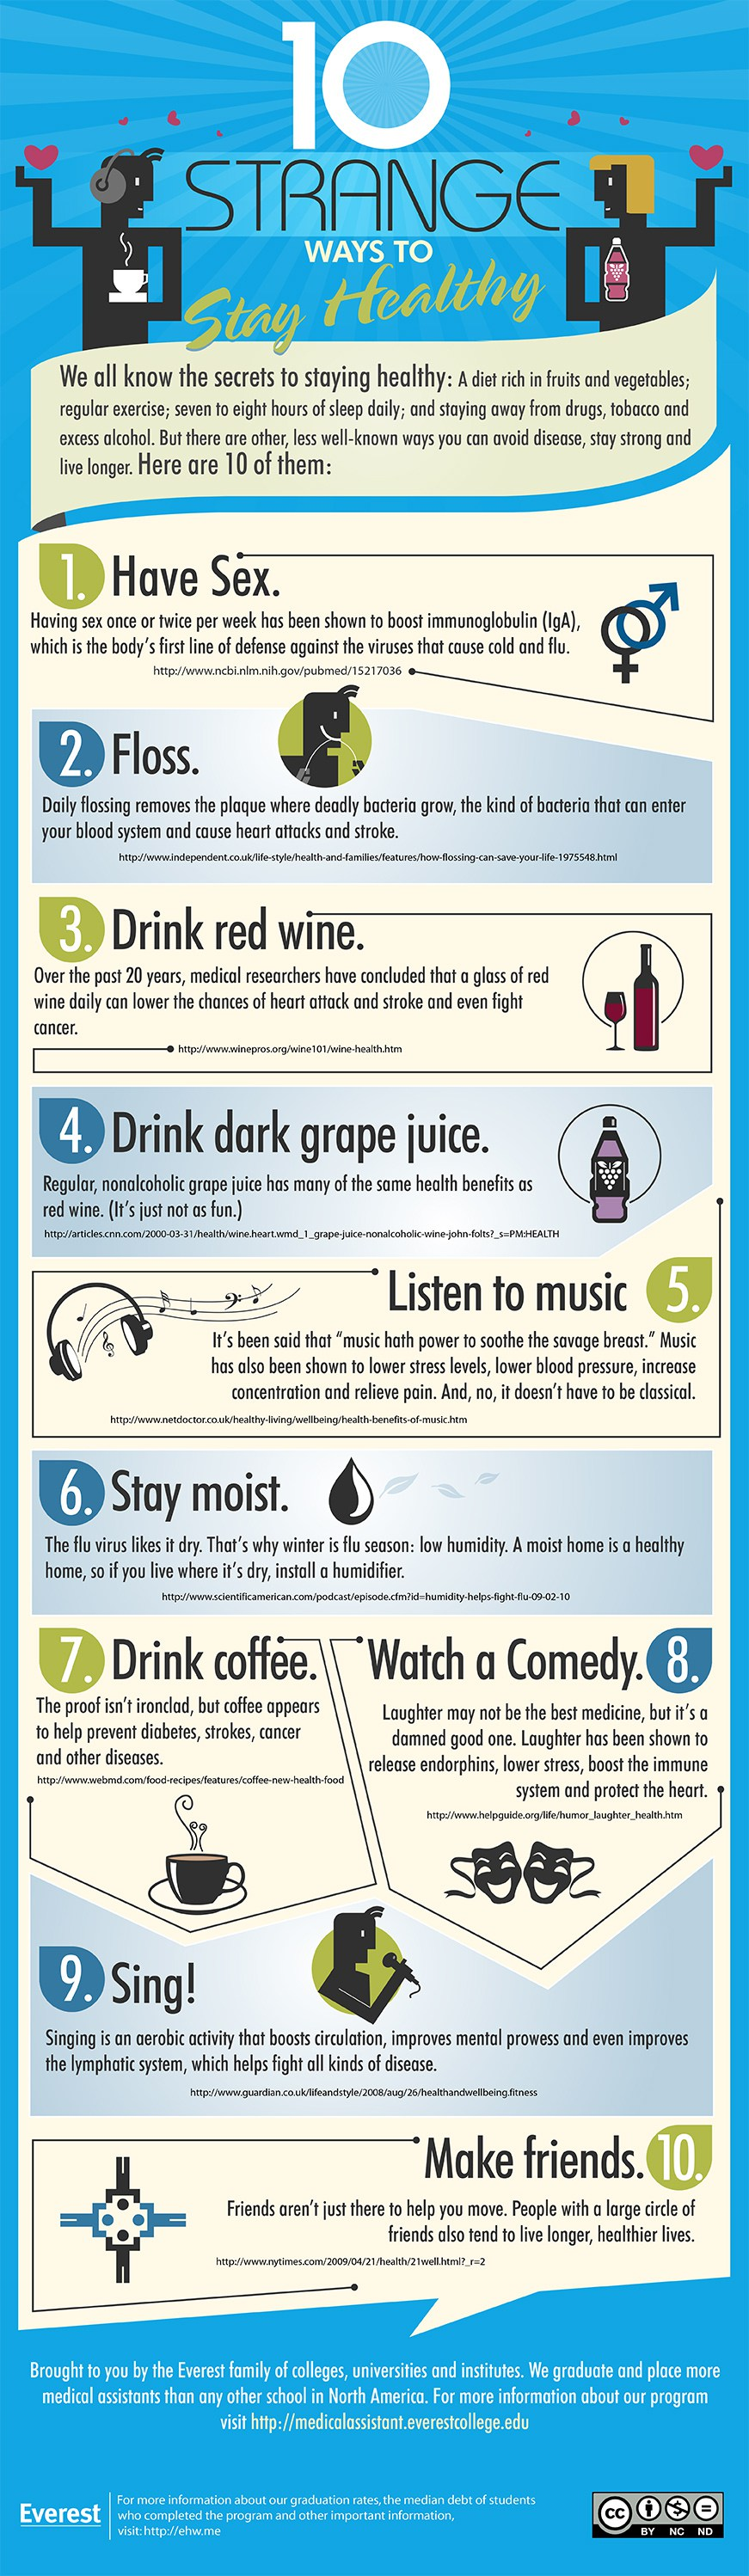 10 Strange Ways to Stay Healthy